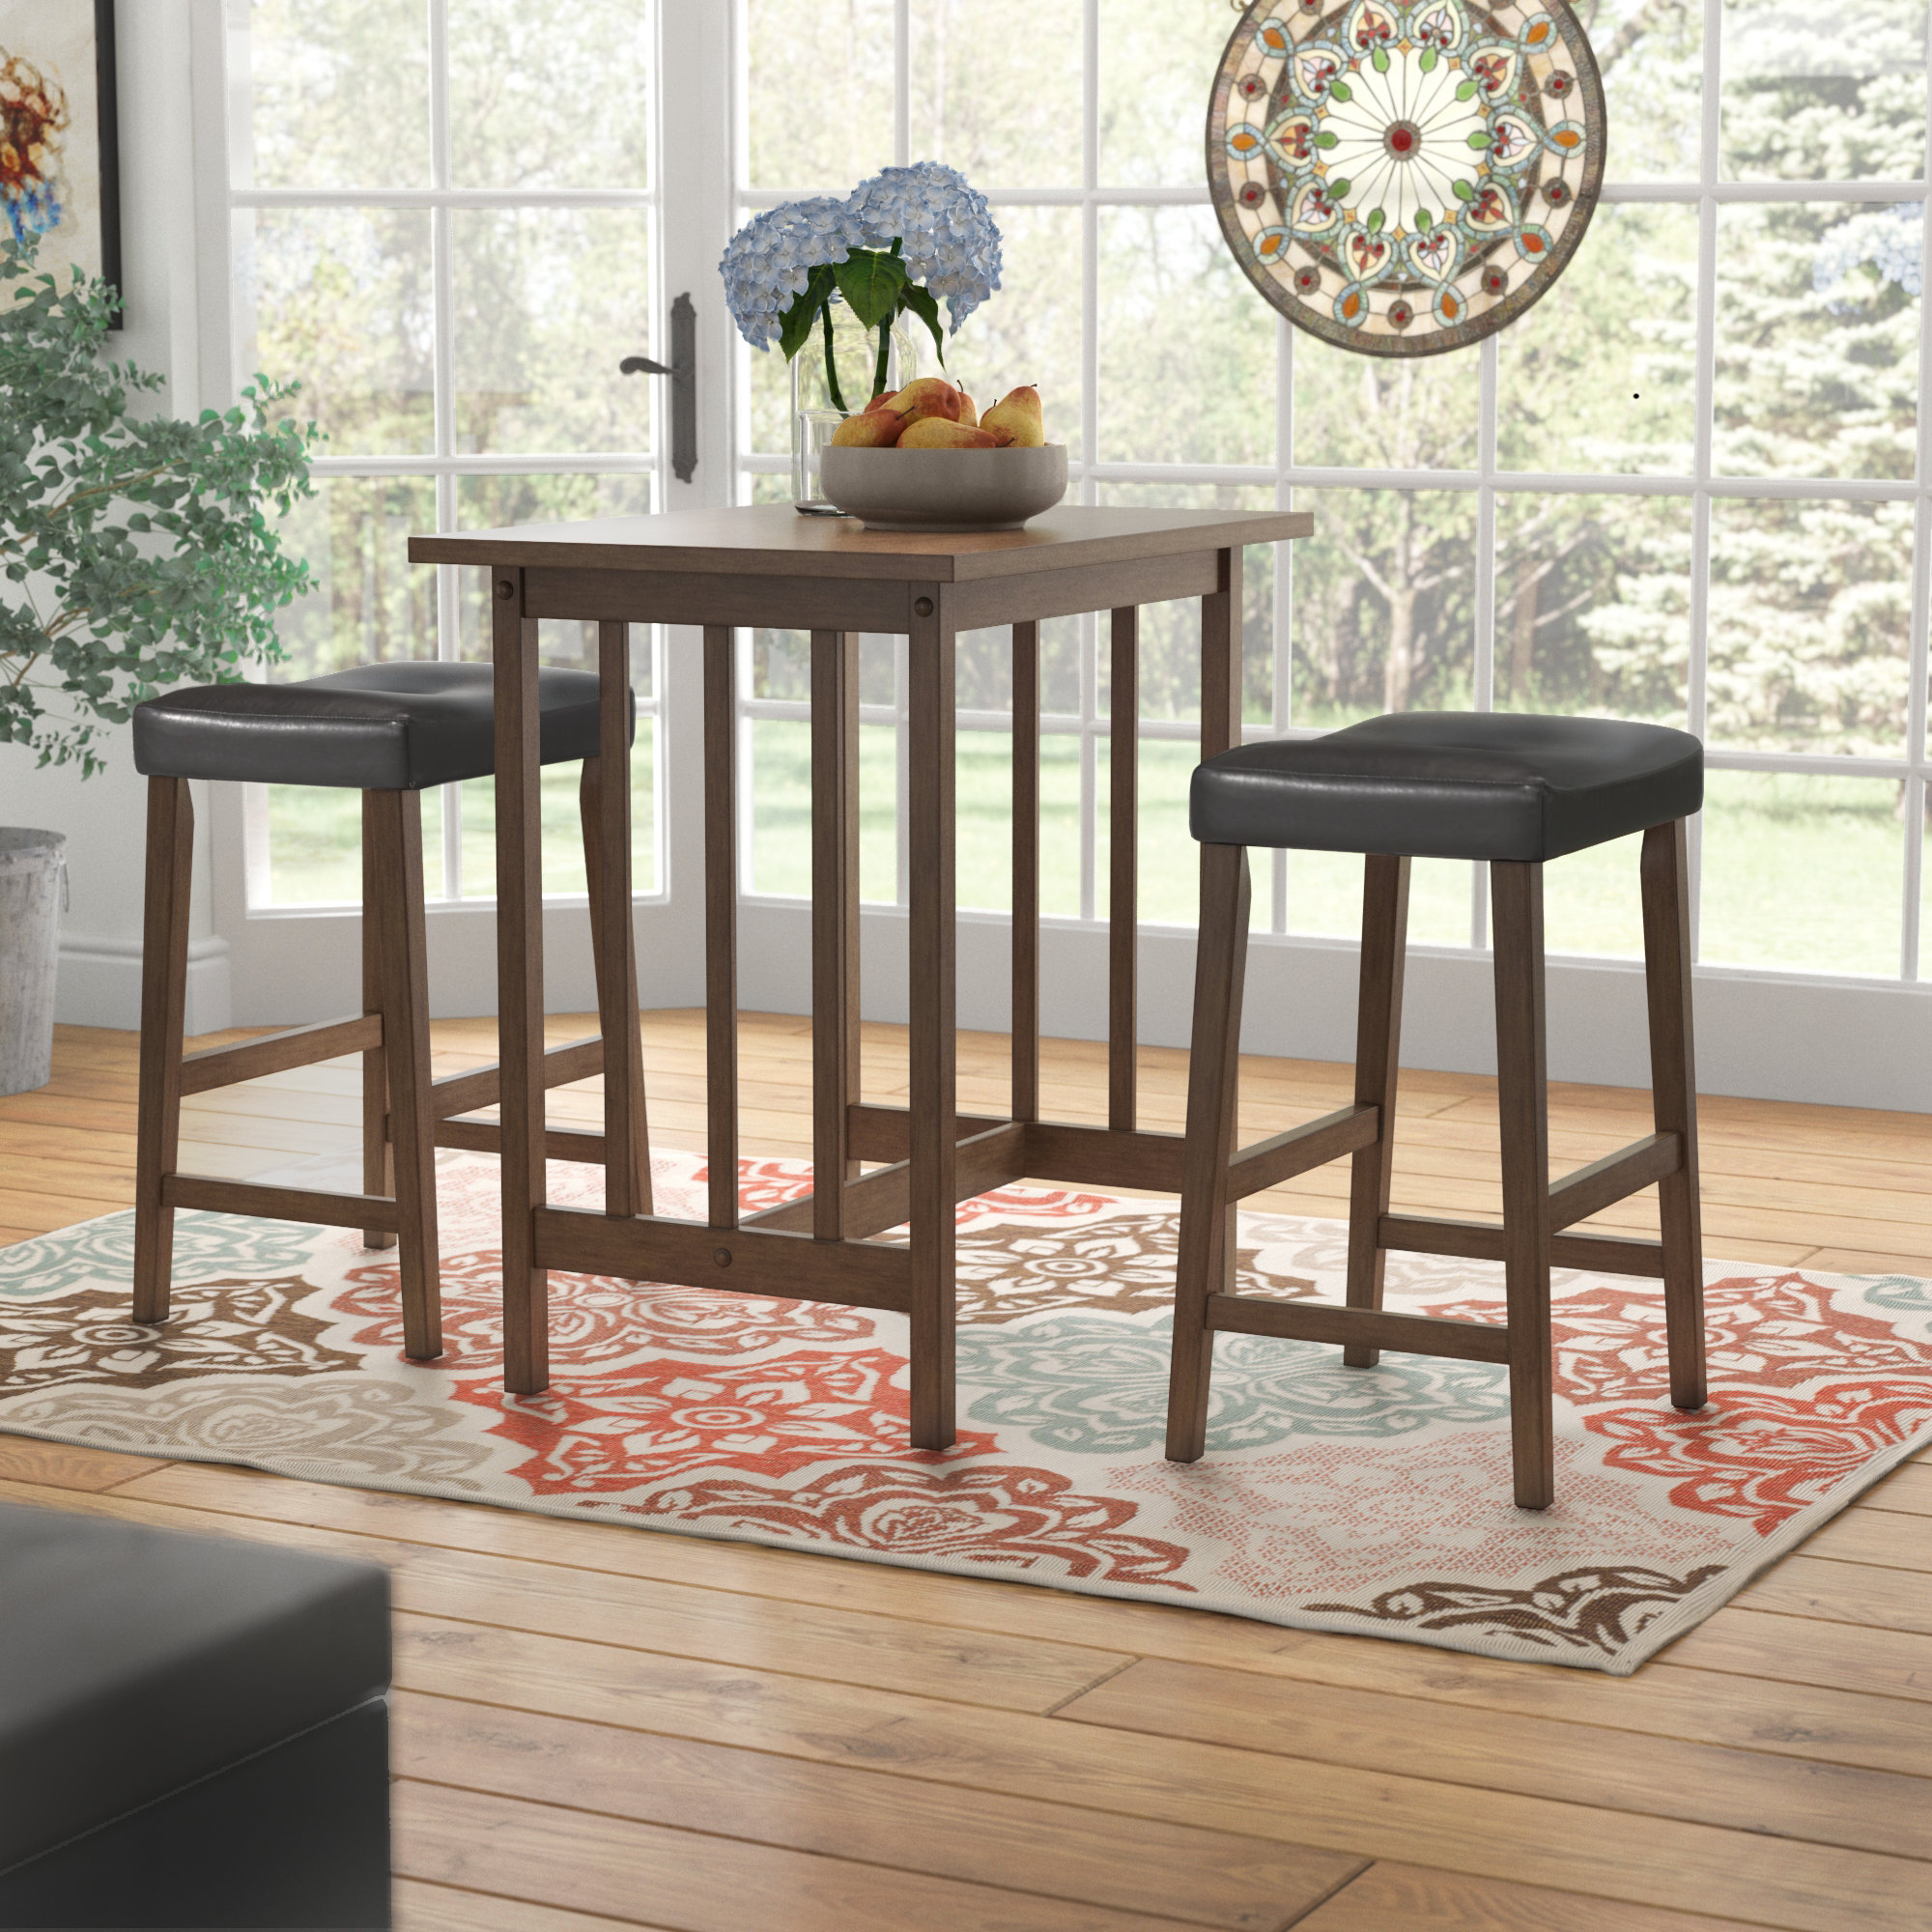 Hood Canal 3 Piece Dining Set Intended For Fashionable Mitzel 3 Piece Dining Sets (View 7 of 20)